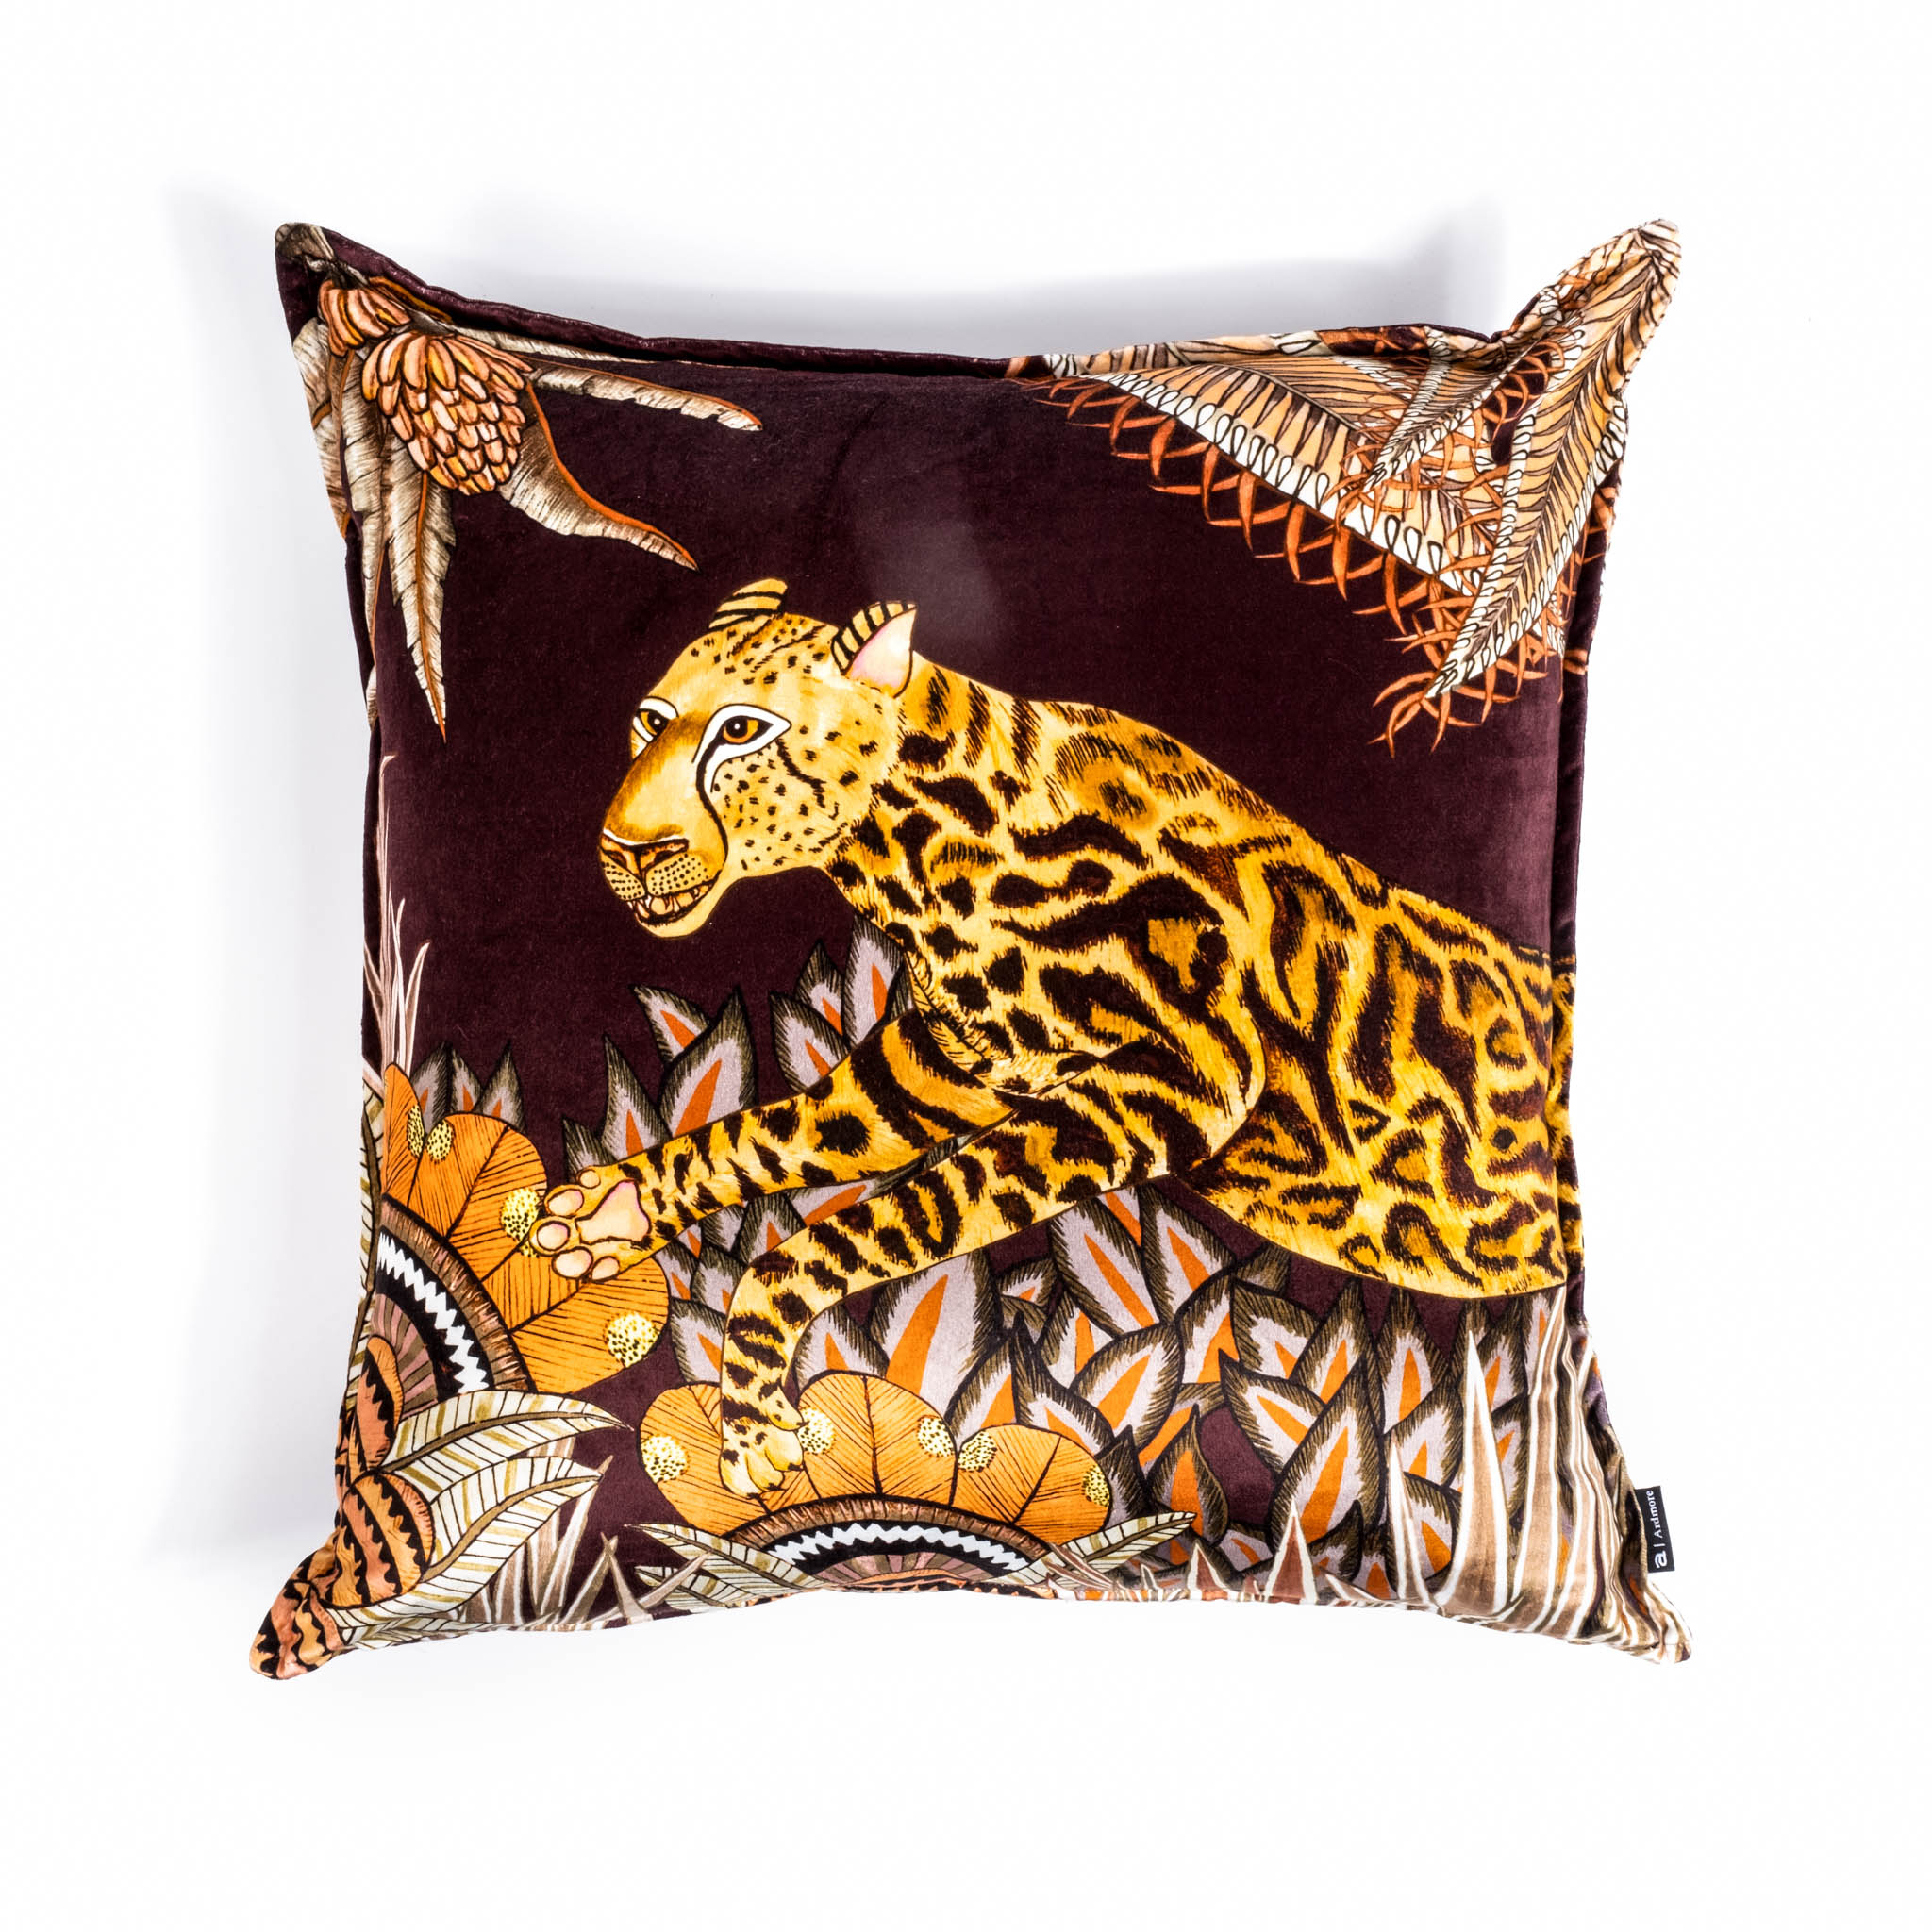 Cheetah Kings Forest Pillow - Velvet - Plum